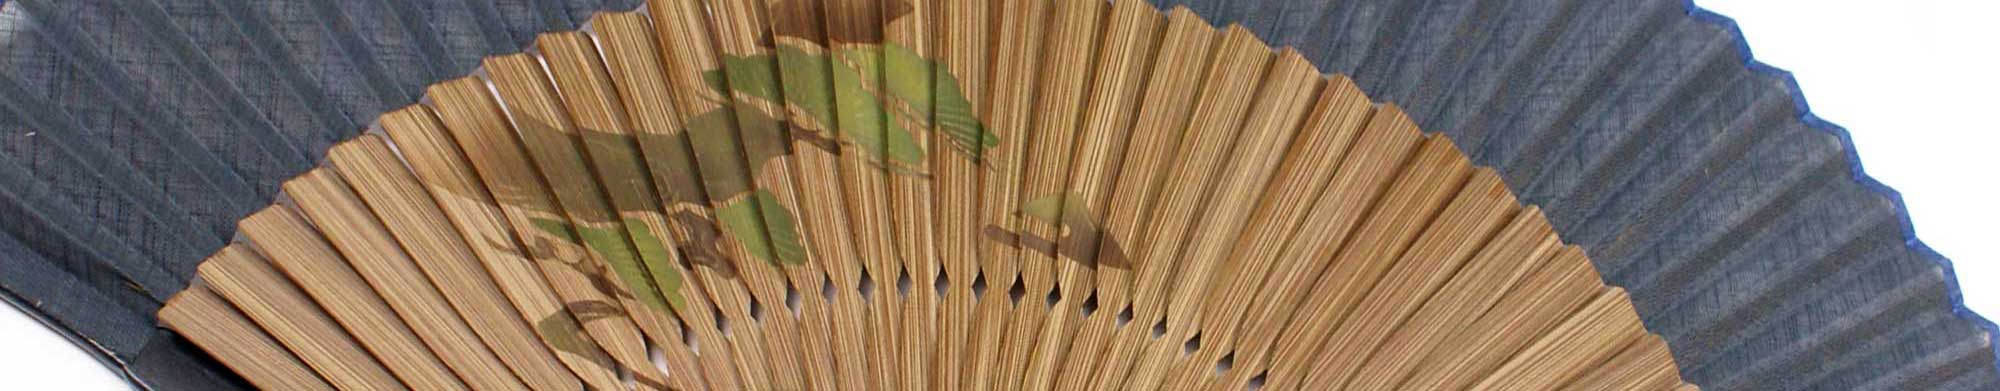 Japanese fans paper and bamboo